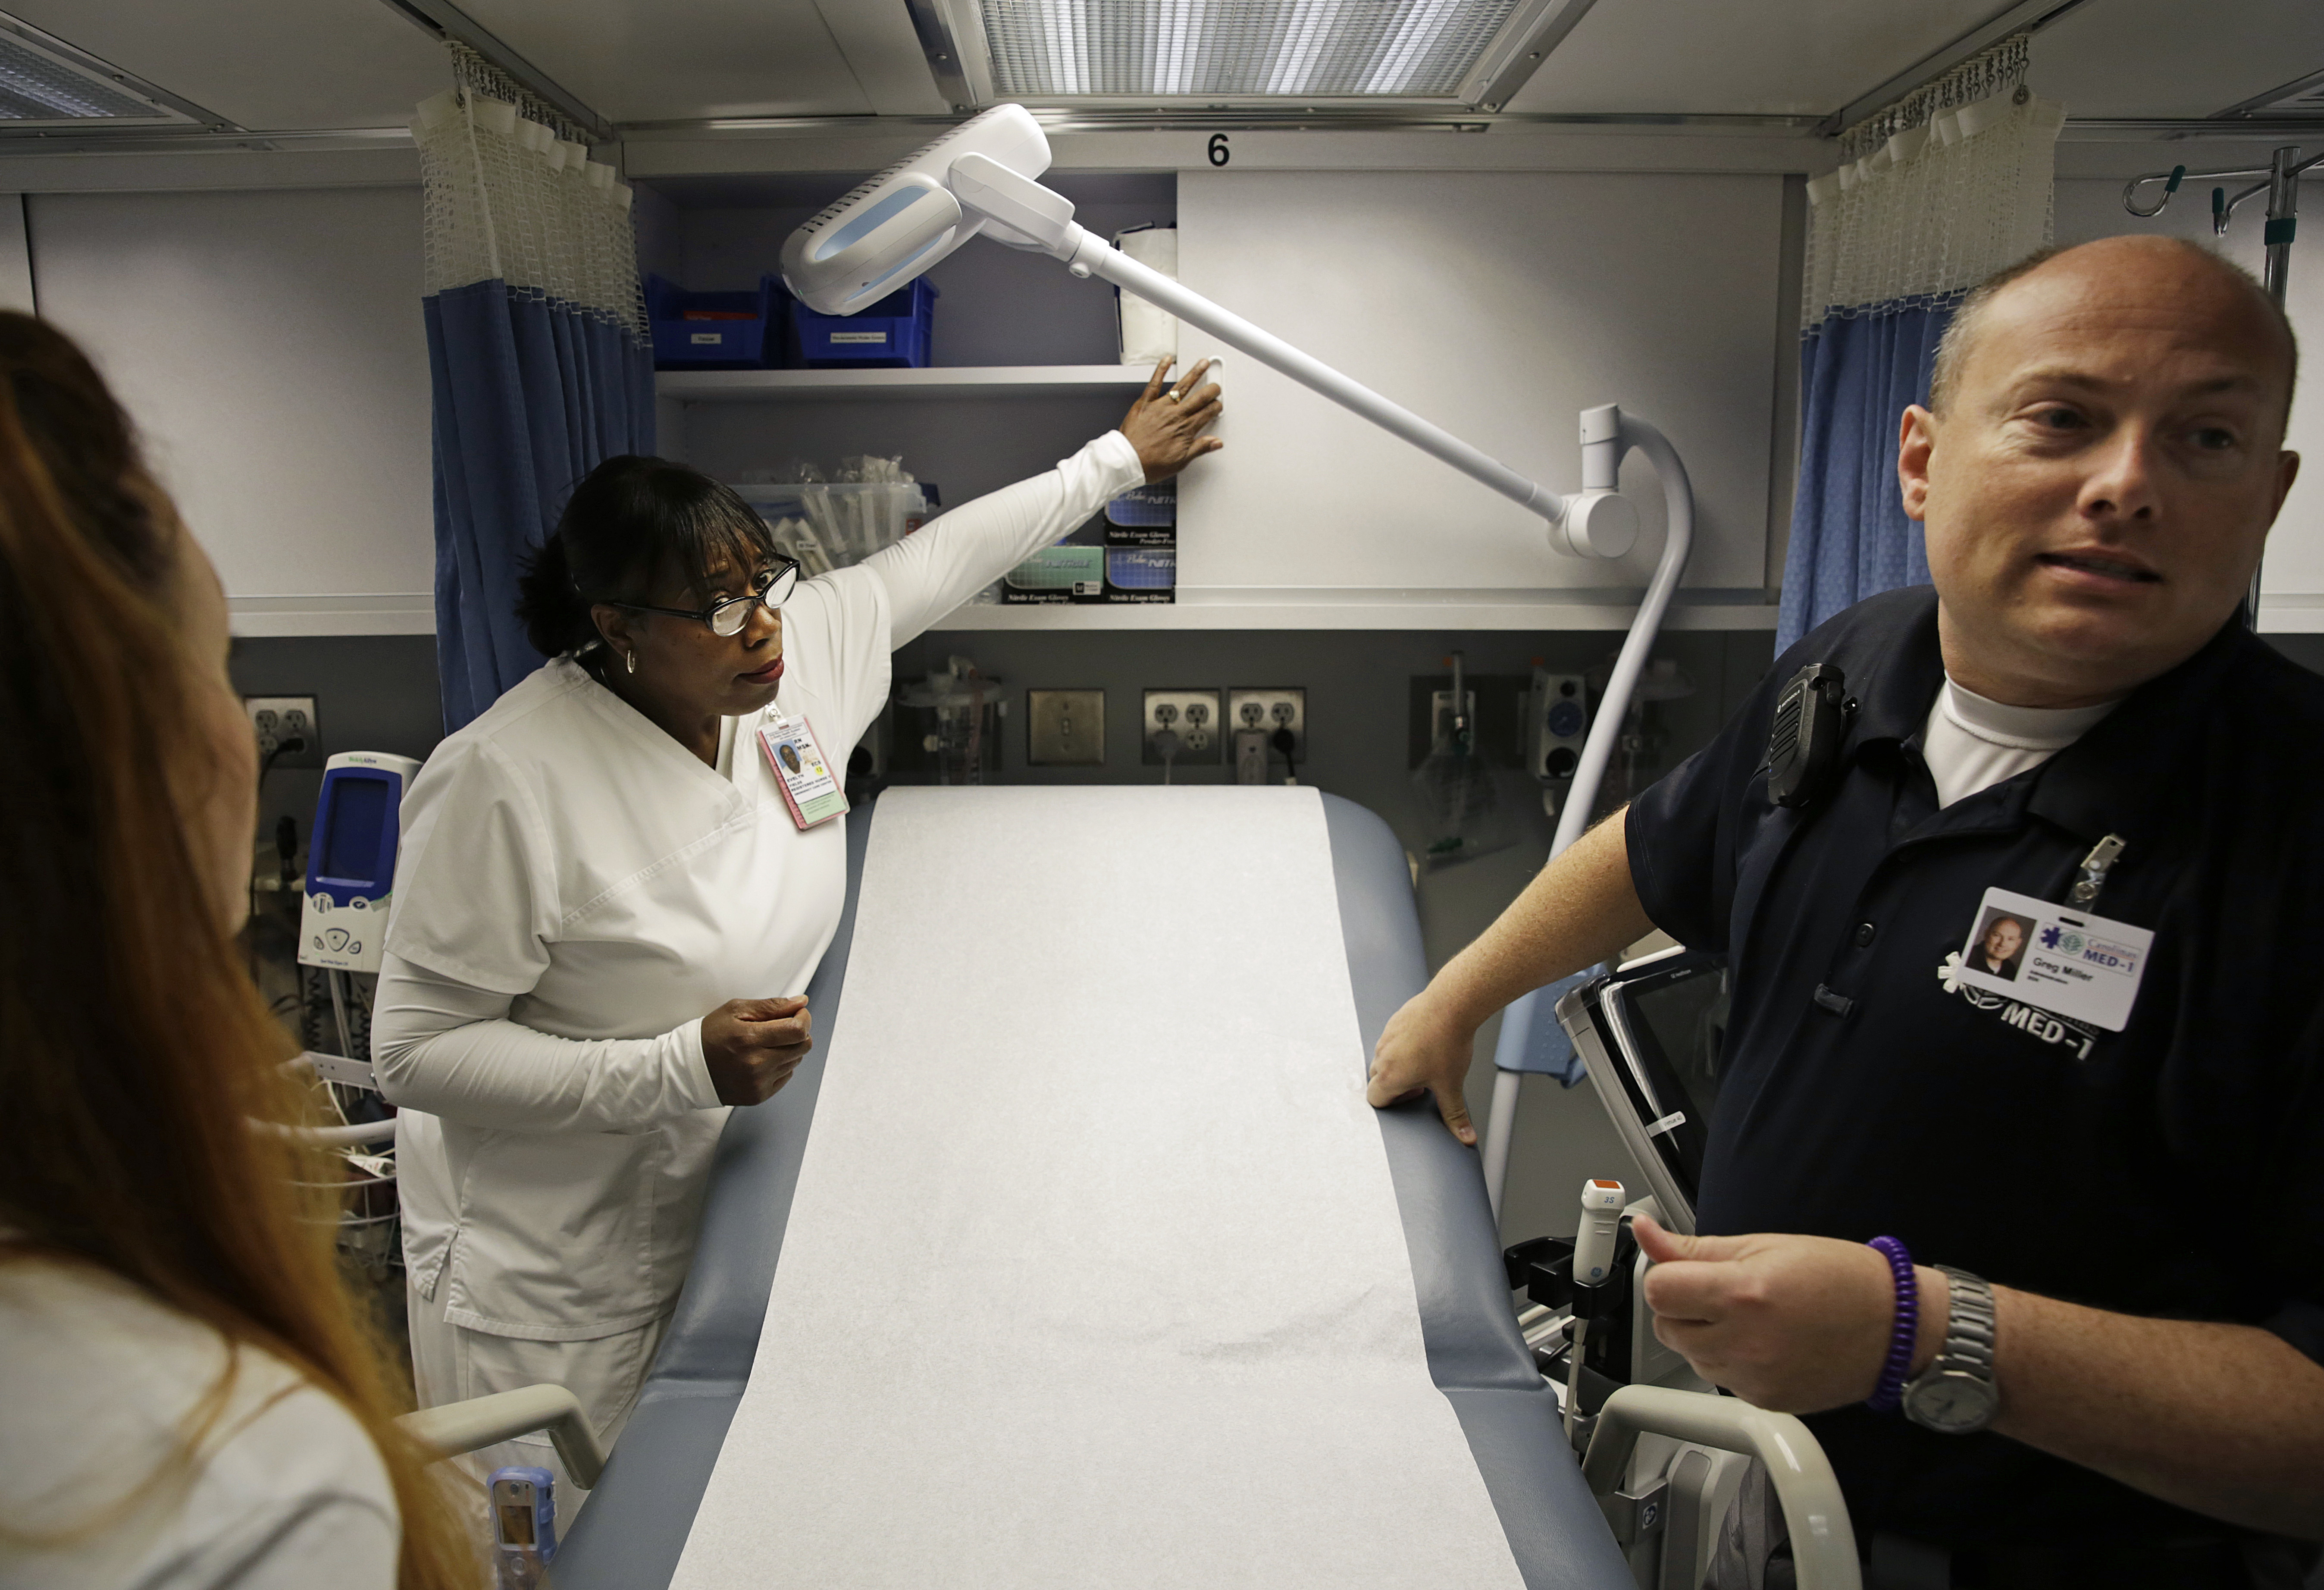 Nurses Tessa Sheffield, from left, Evelyn Fields and Greg Miller look over a mobile emergency room set up outside Grady Memorial Hospital to help handle the ever-growing number of flu cases in Atlanta, Jan. 29, 2018.